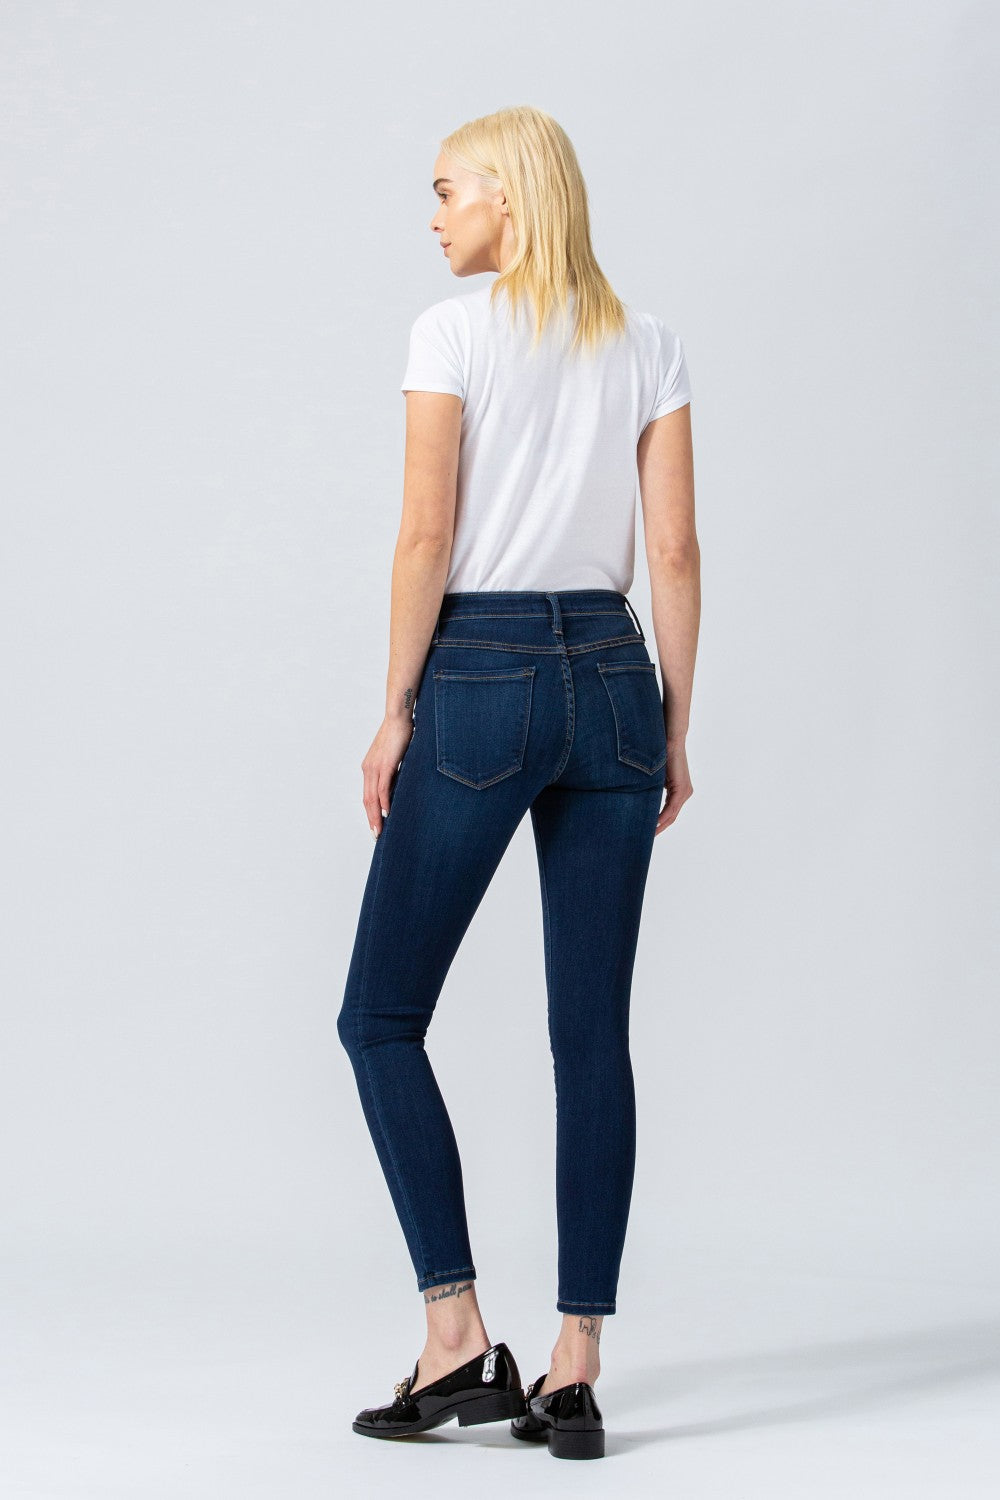 G1009 - Mid rise xtra lycra super soft ankle skinny jeans